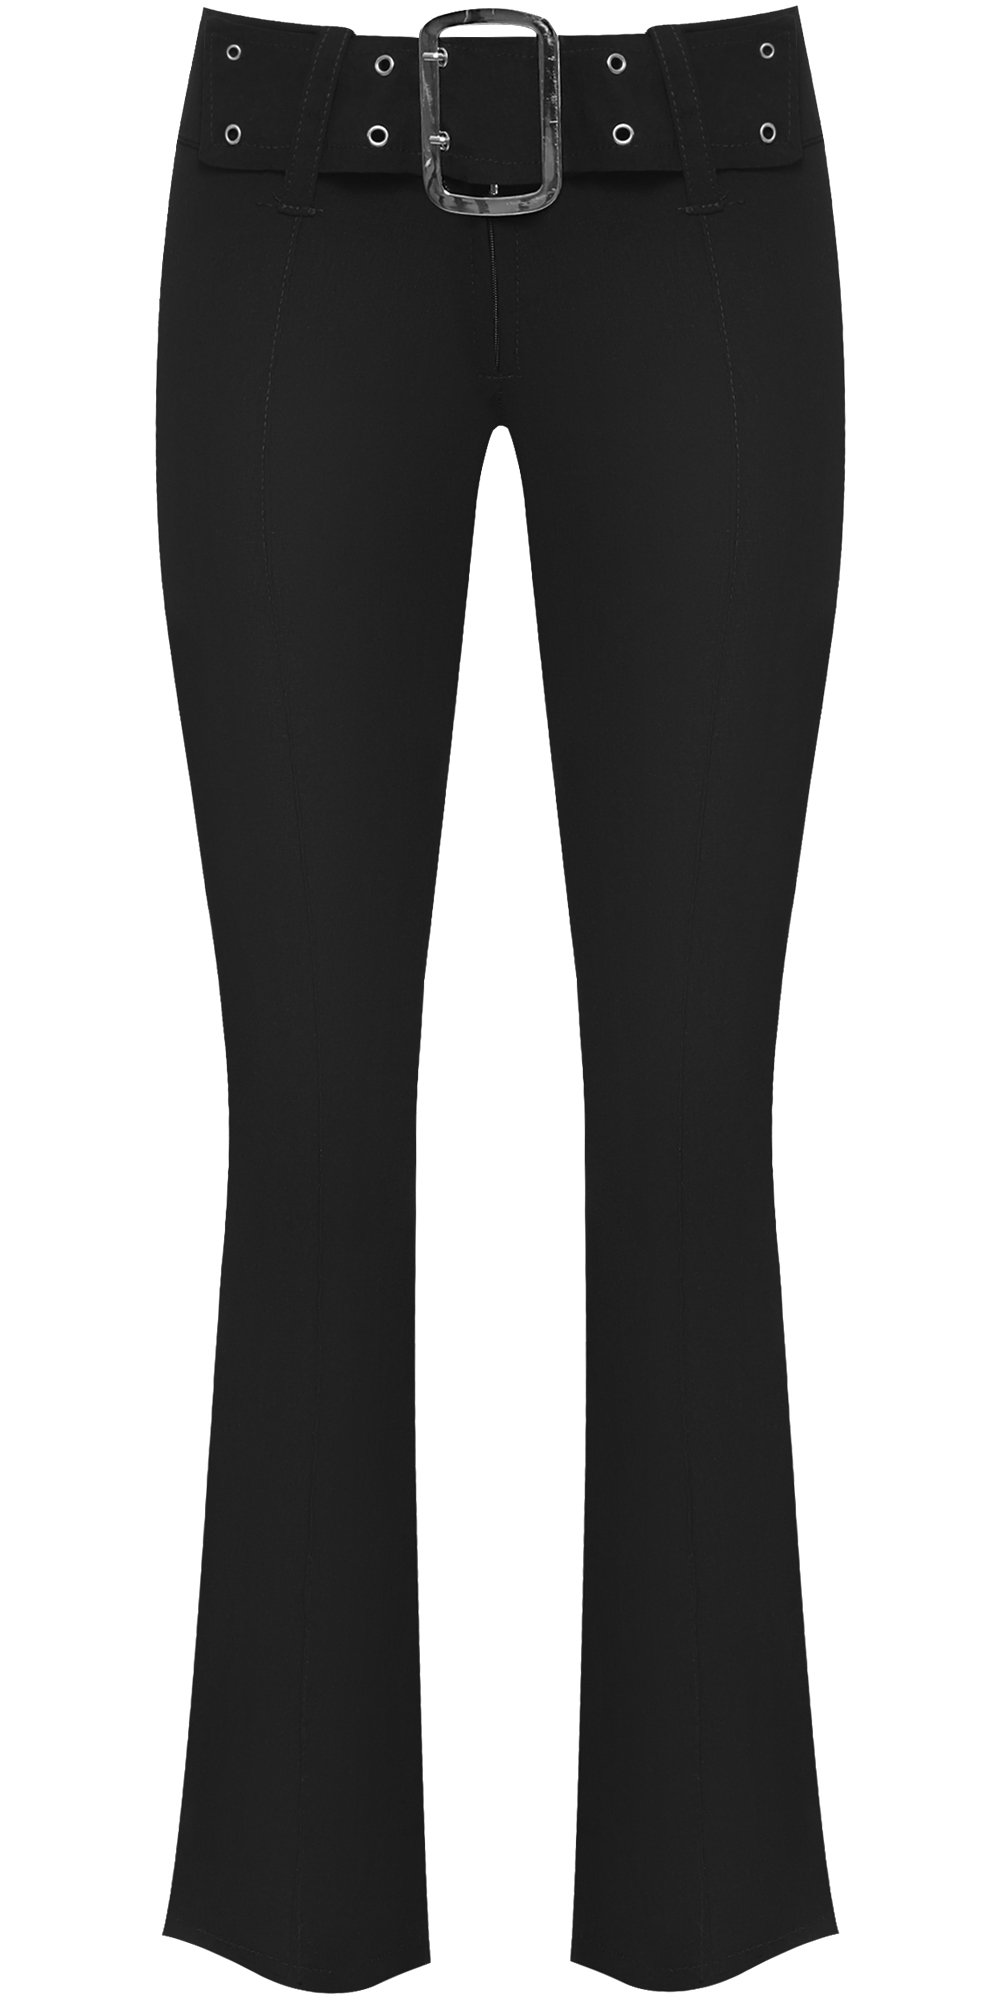 e149319fe0a New Womens Plain Black Hipster Ladies Stretch Bootcut Skinny Trousers Pants  6-16